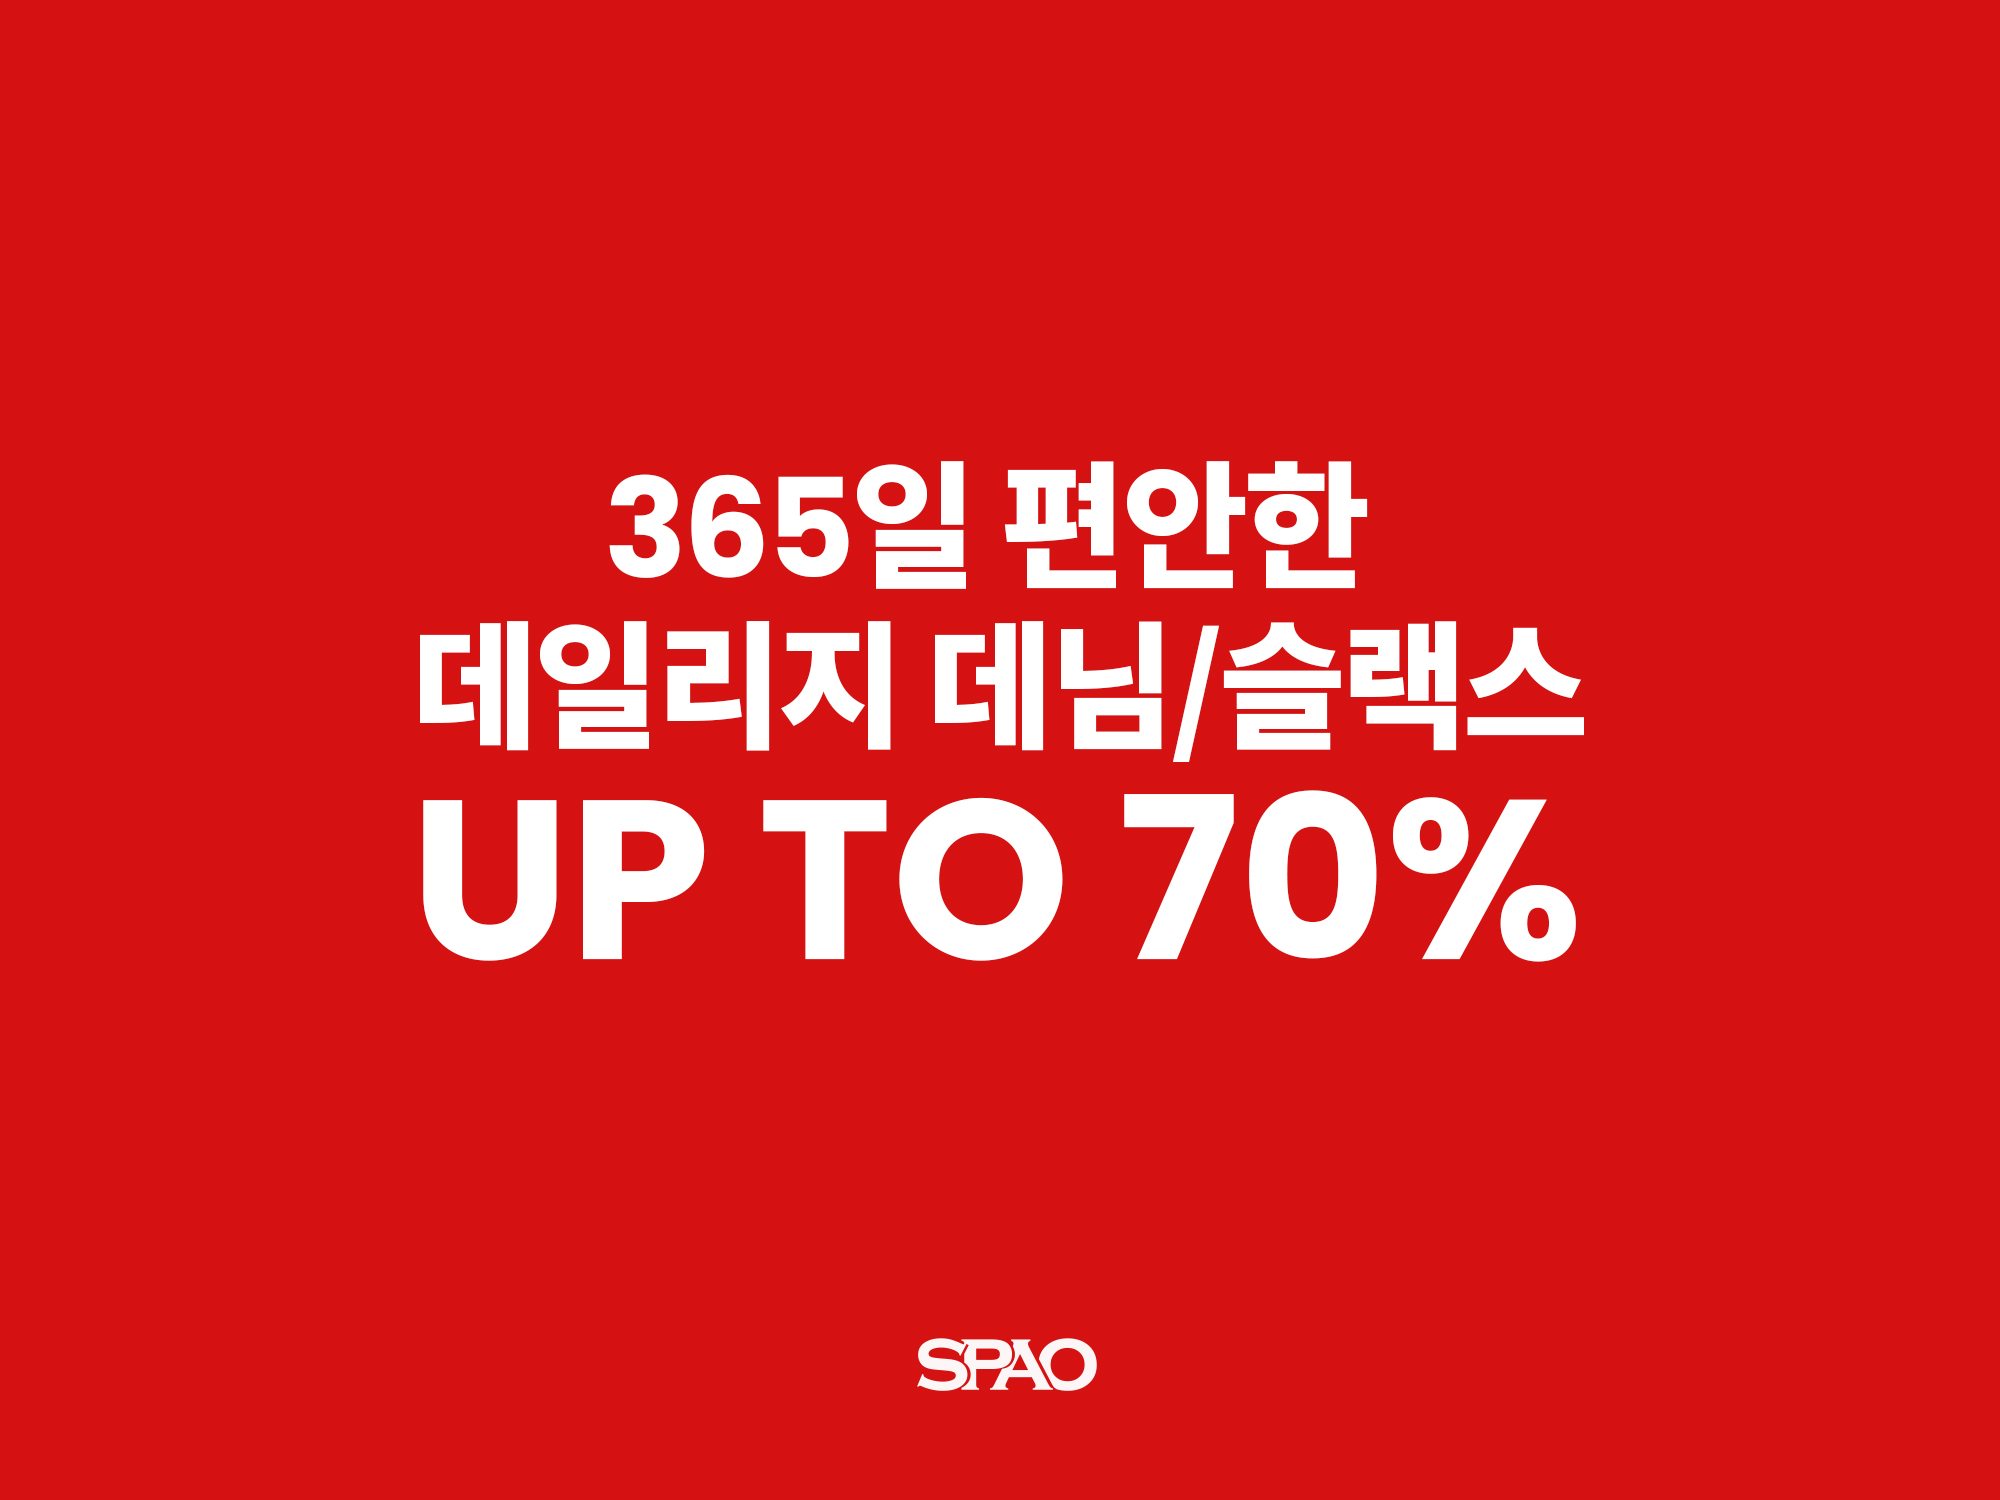 SPRING SALE ★UP TO 70%★